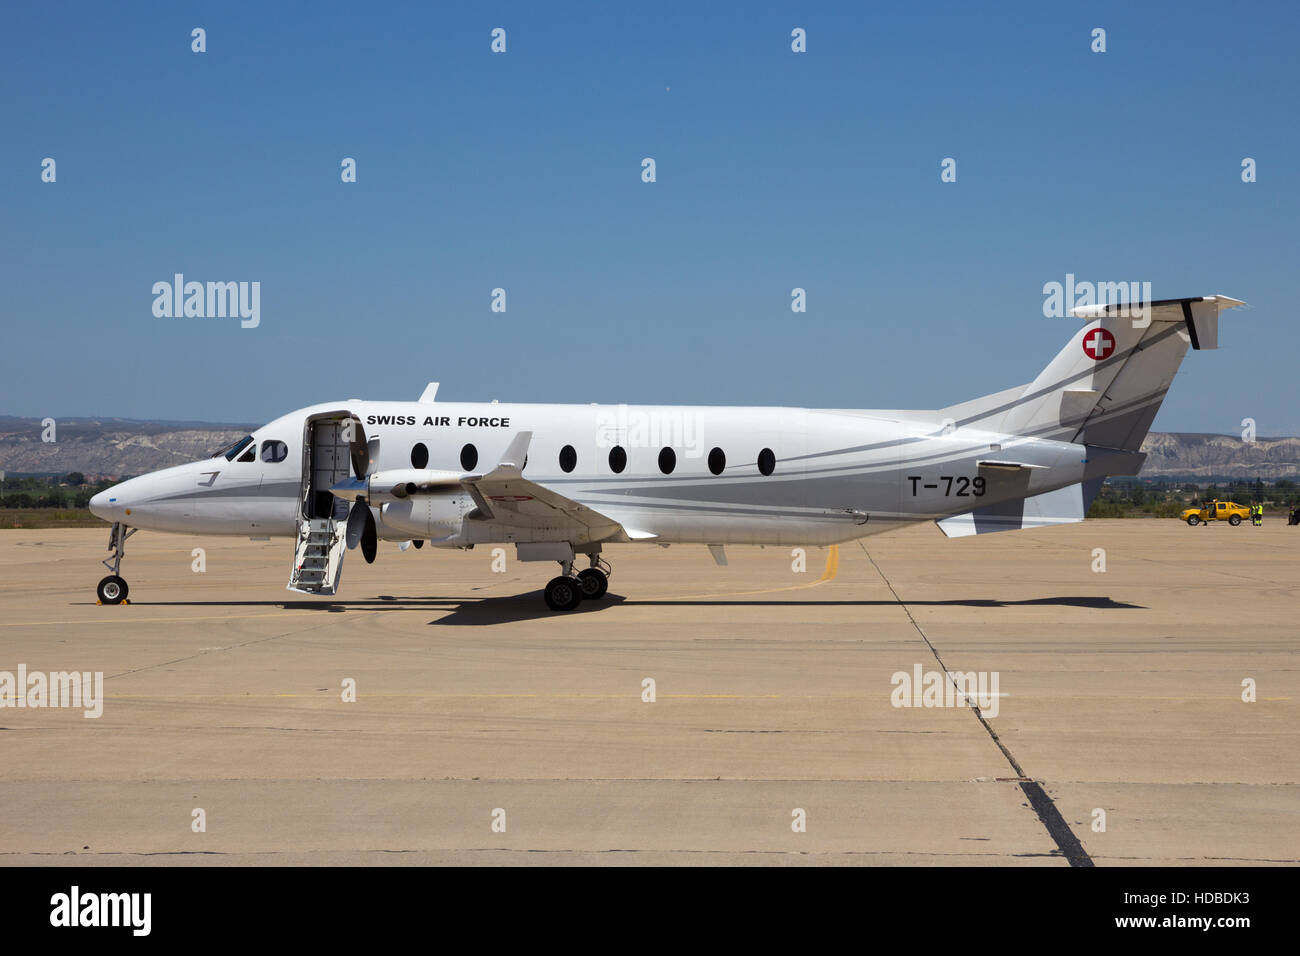 Swiss Air Force Beech 1900D on the tarmac of Zaragoza airbase. Spain - Stock Image